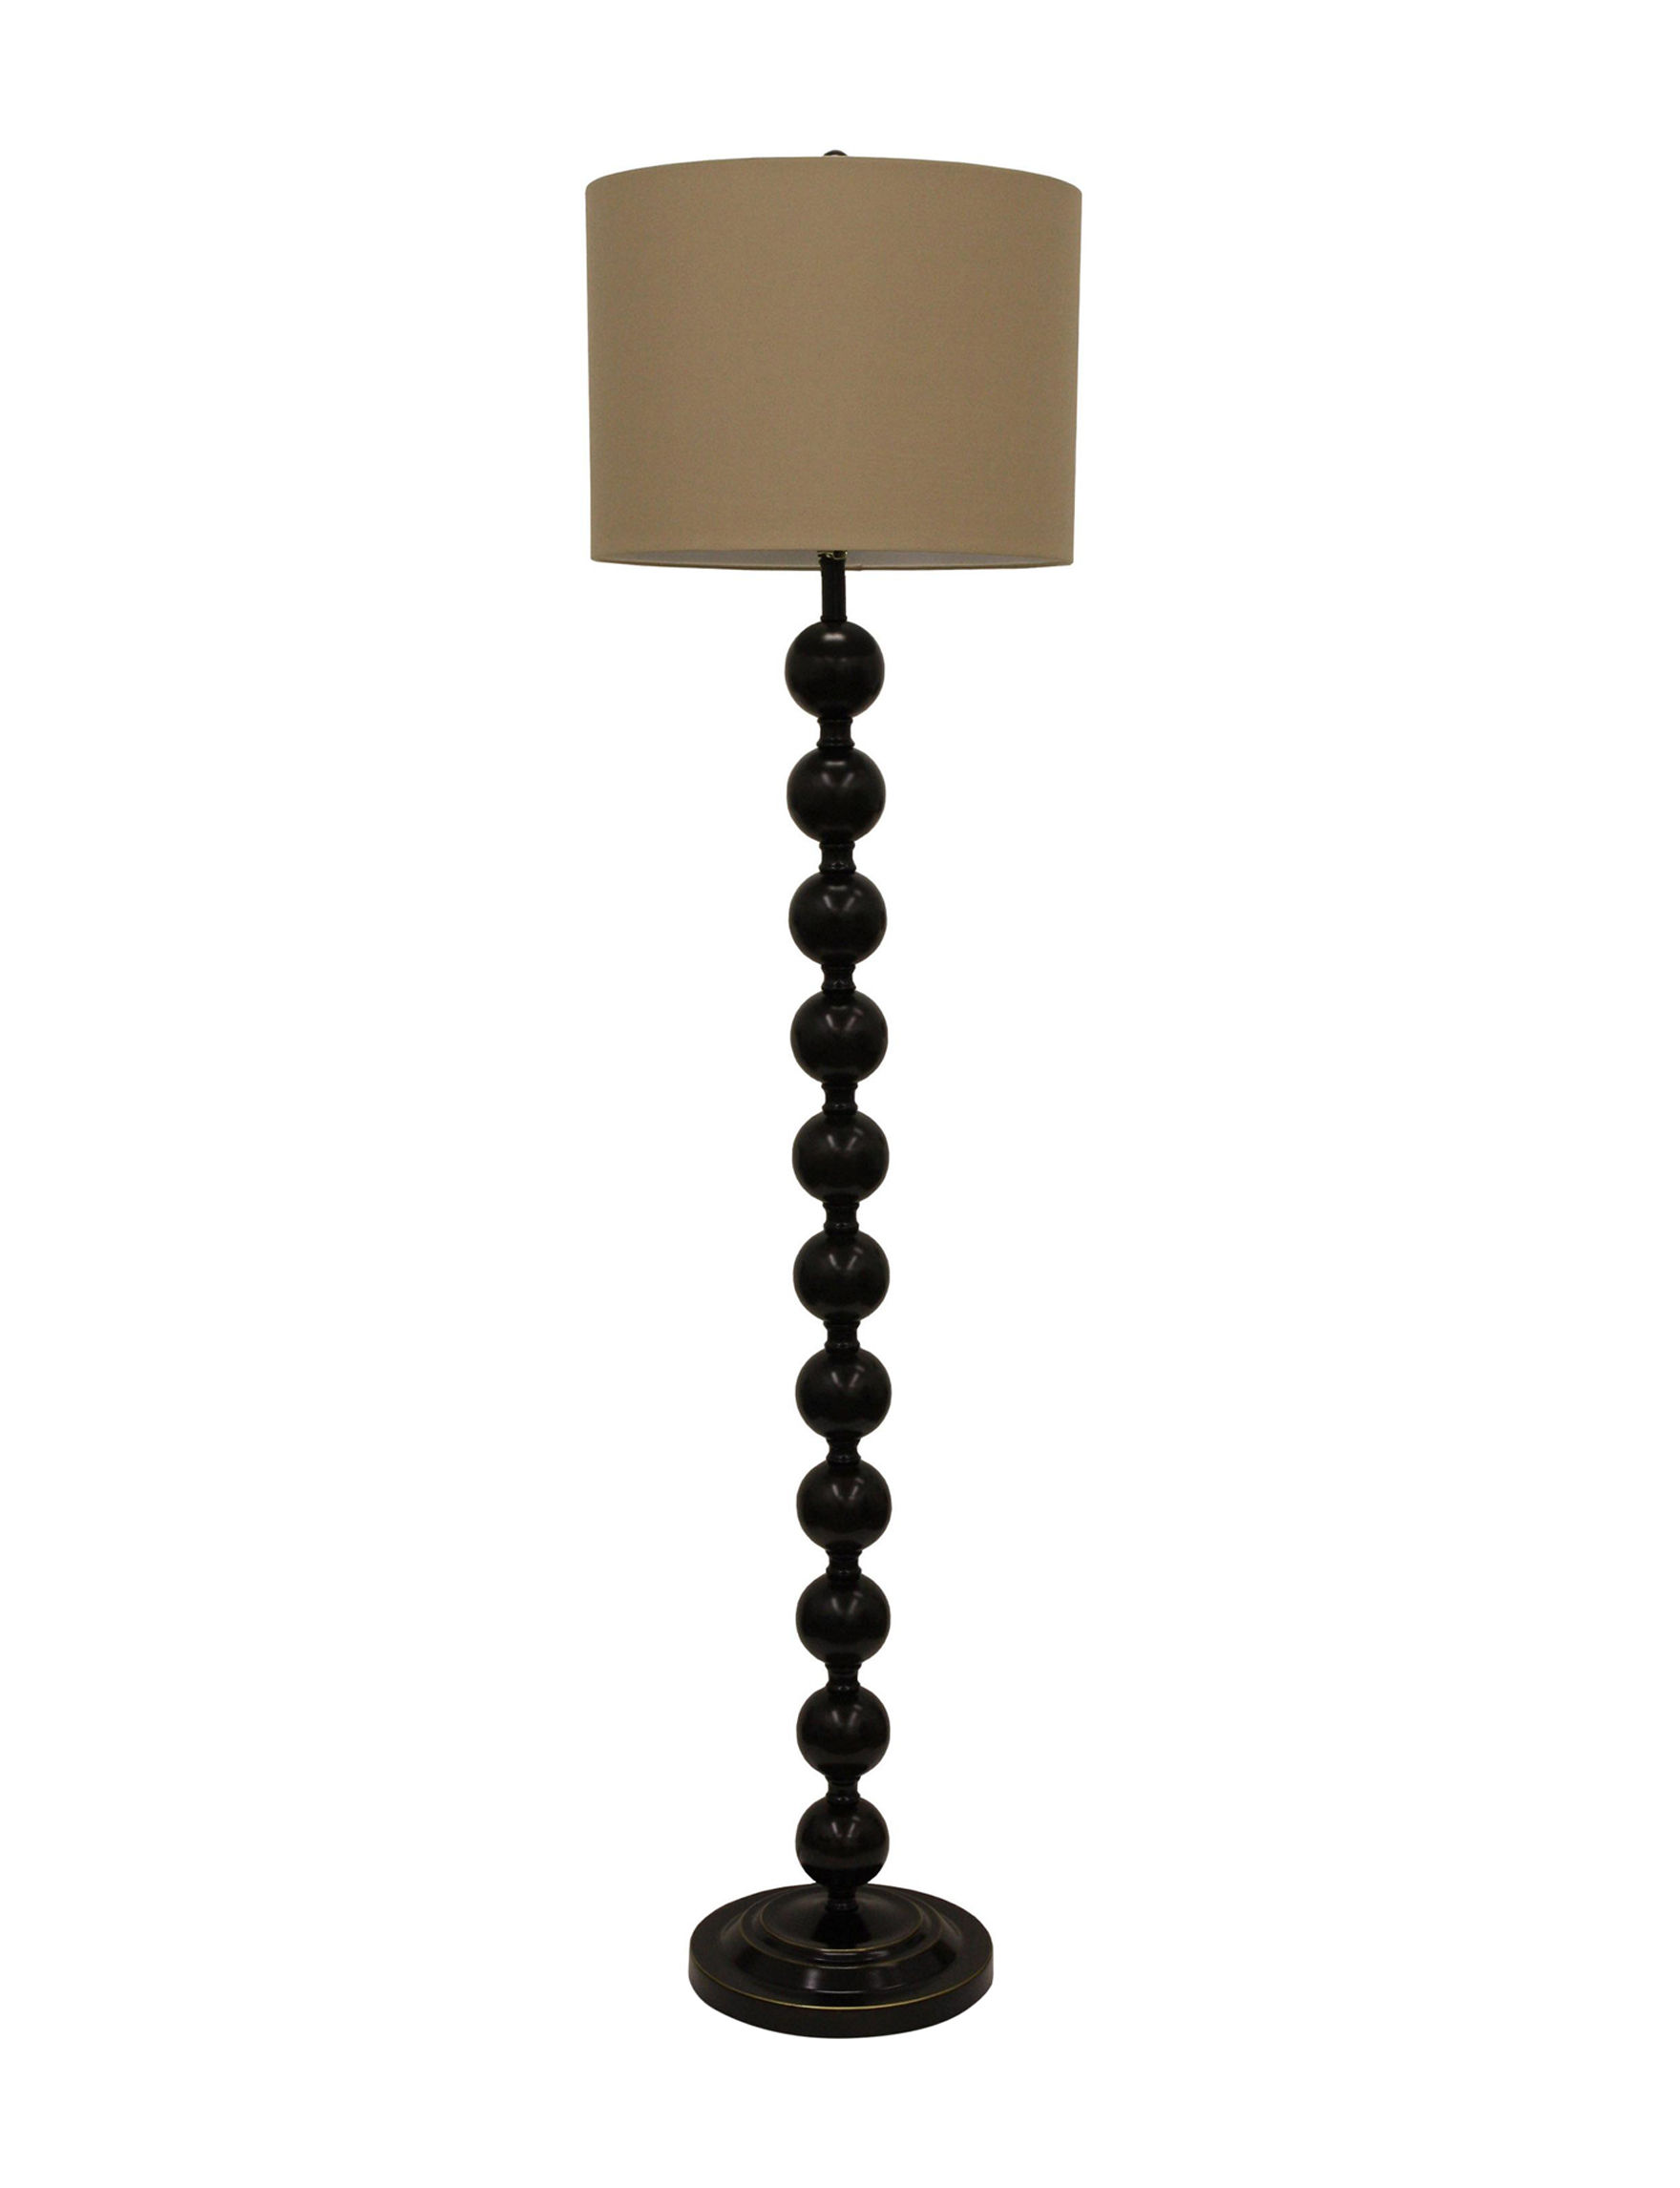 Decor Therapy Bronze Floor Lamps Lighting & Lamps